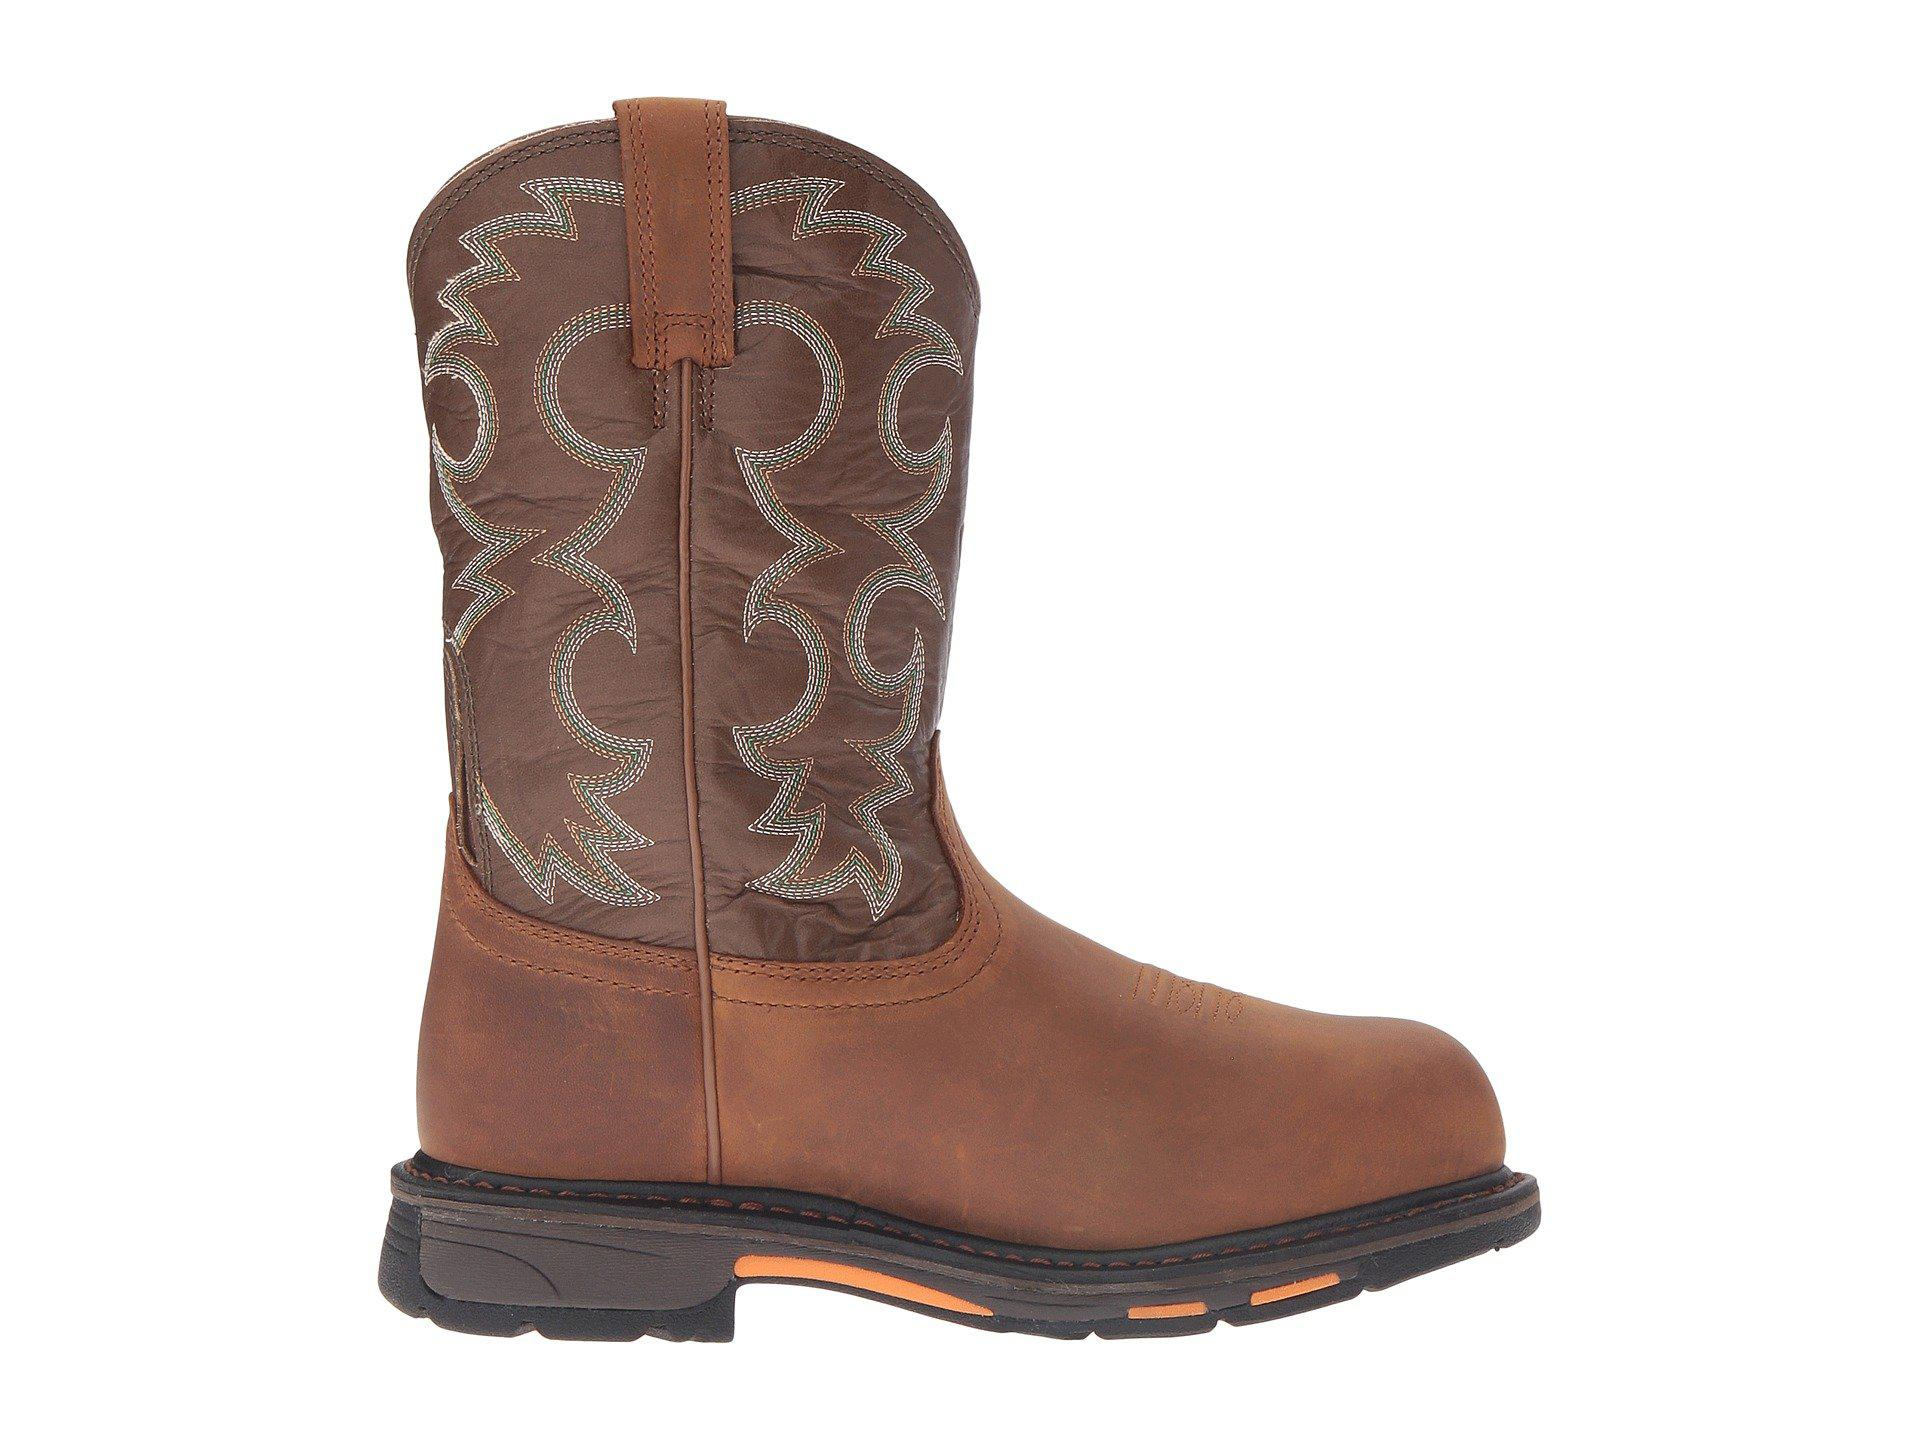 ba7c92961c5 Ariat Workhog Pull-on Ct Wp (aged Bark/army Green) Women's Work ...